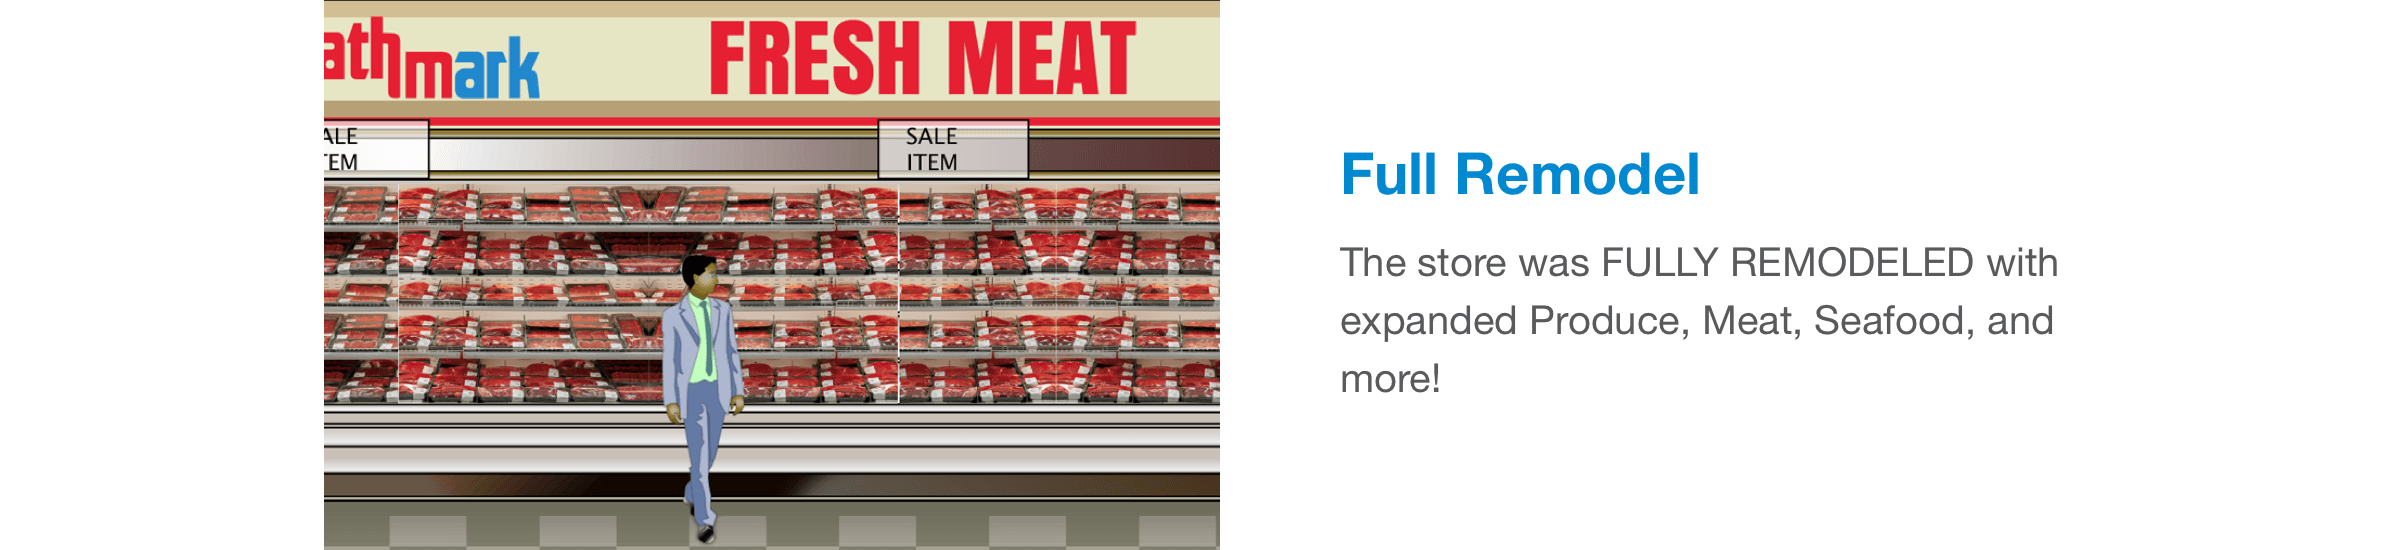 The store was fully remodeled with expanded Produce, Meat, Seafood, and more!